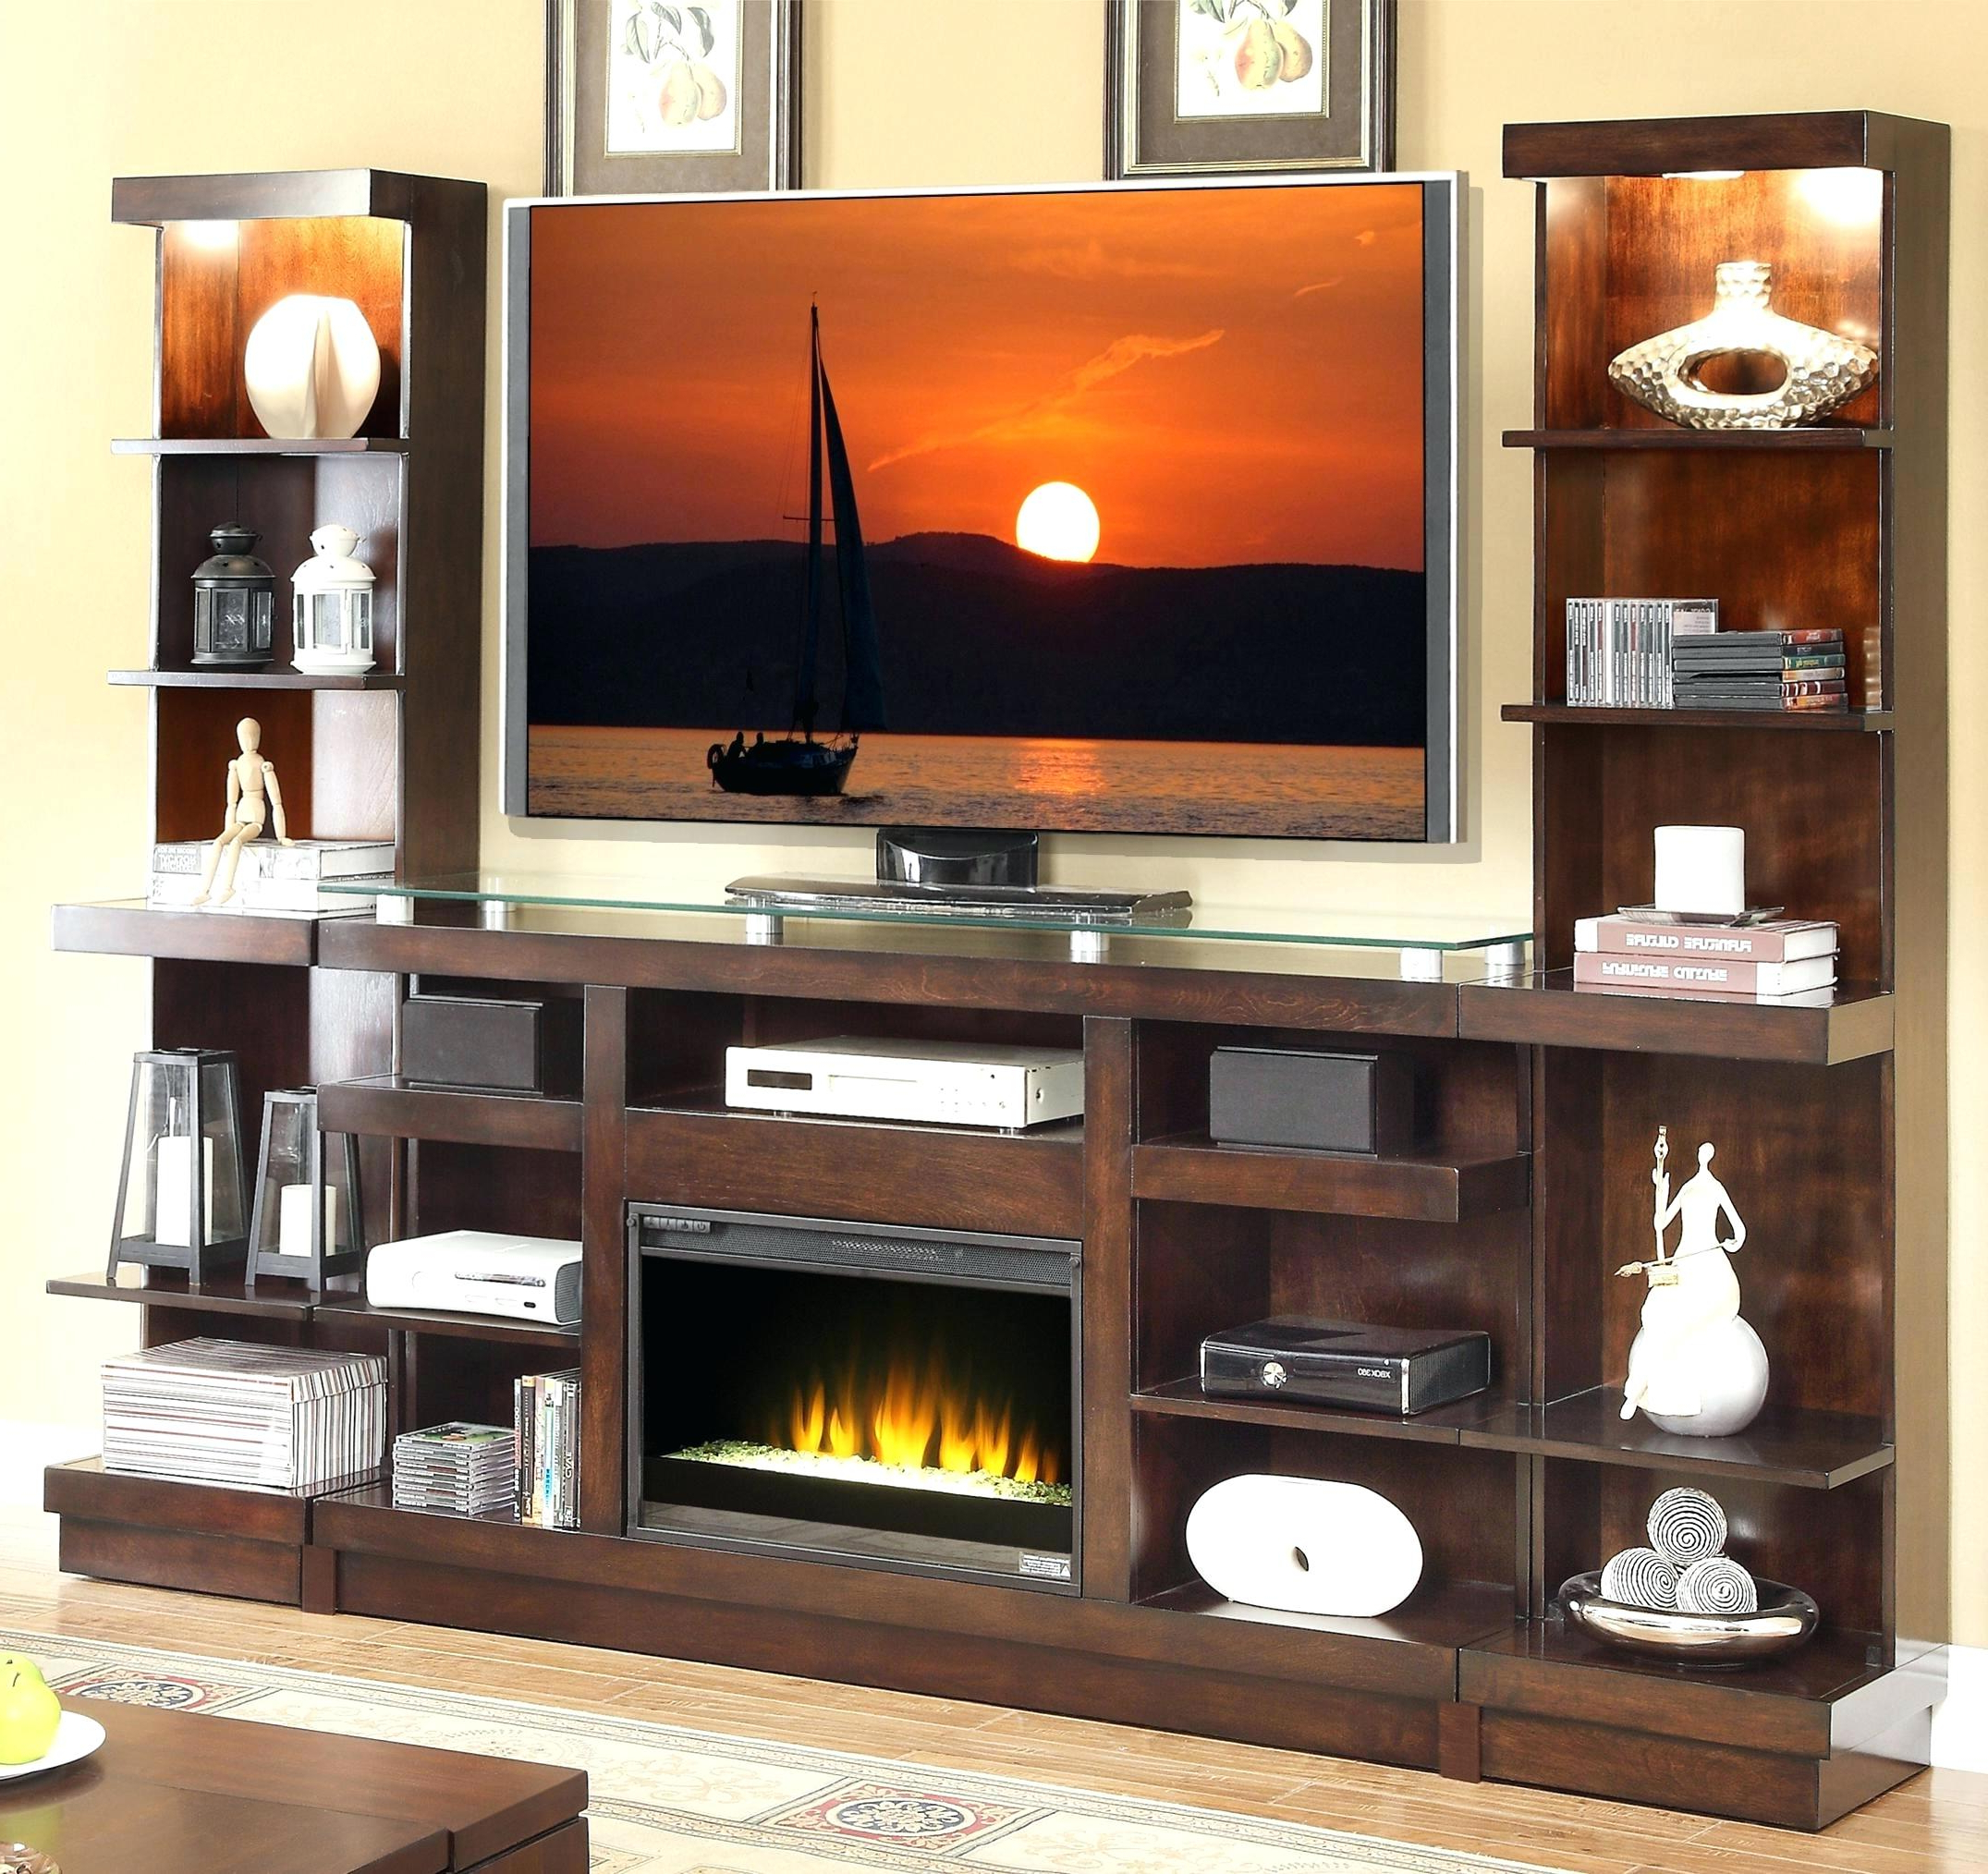 Entertainment Centers For Cheap Flat Screens Wall Unit Center 60 Intended For Most Up To Date 60 Inch Tv Wall Units (Gallery 10 of 20)